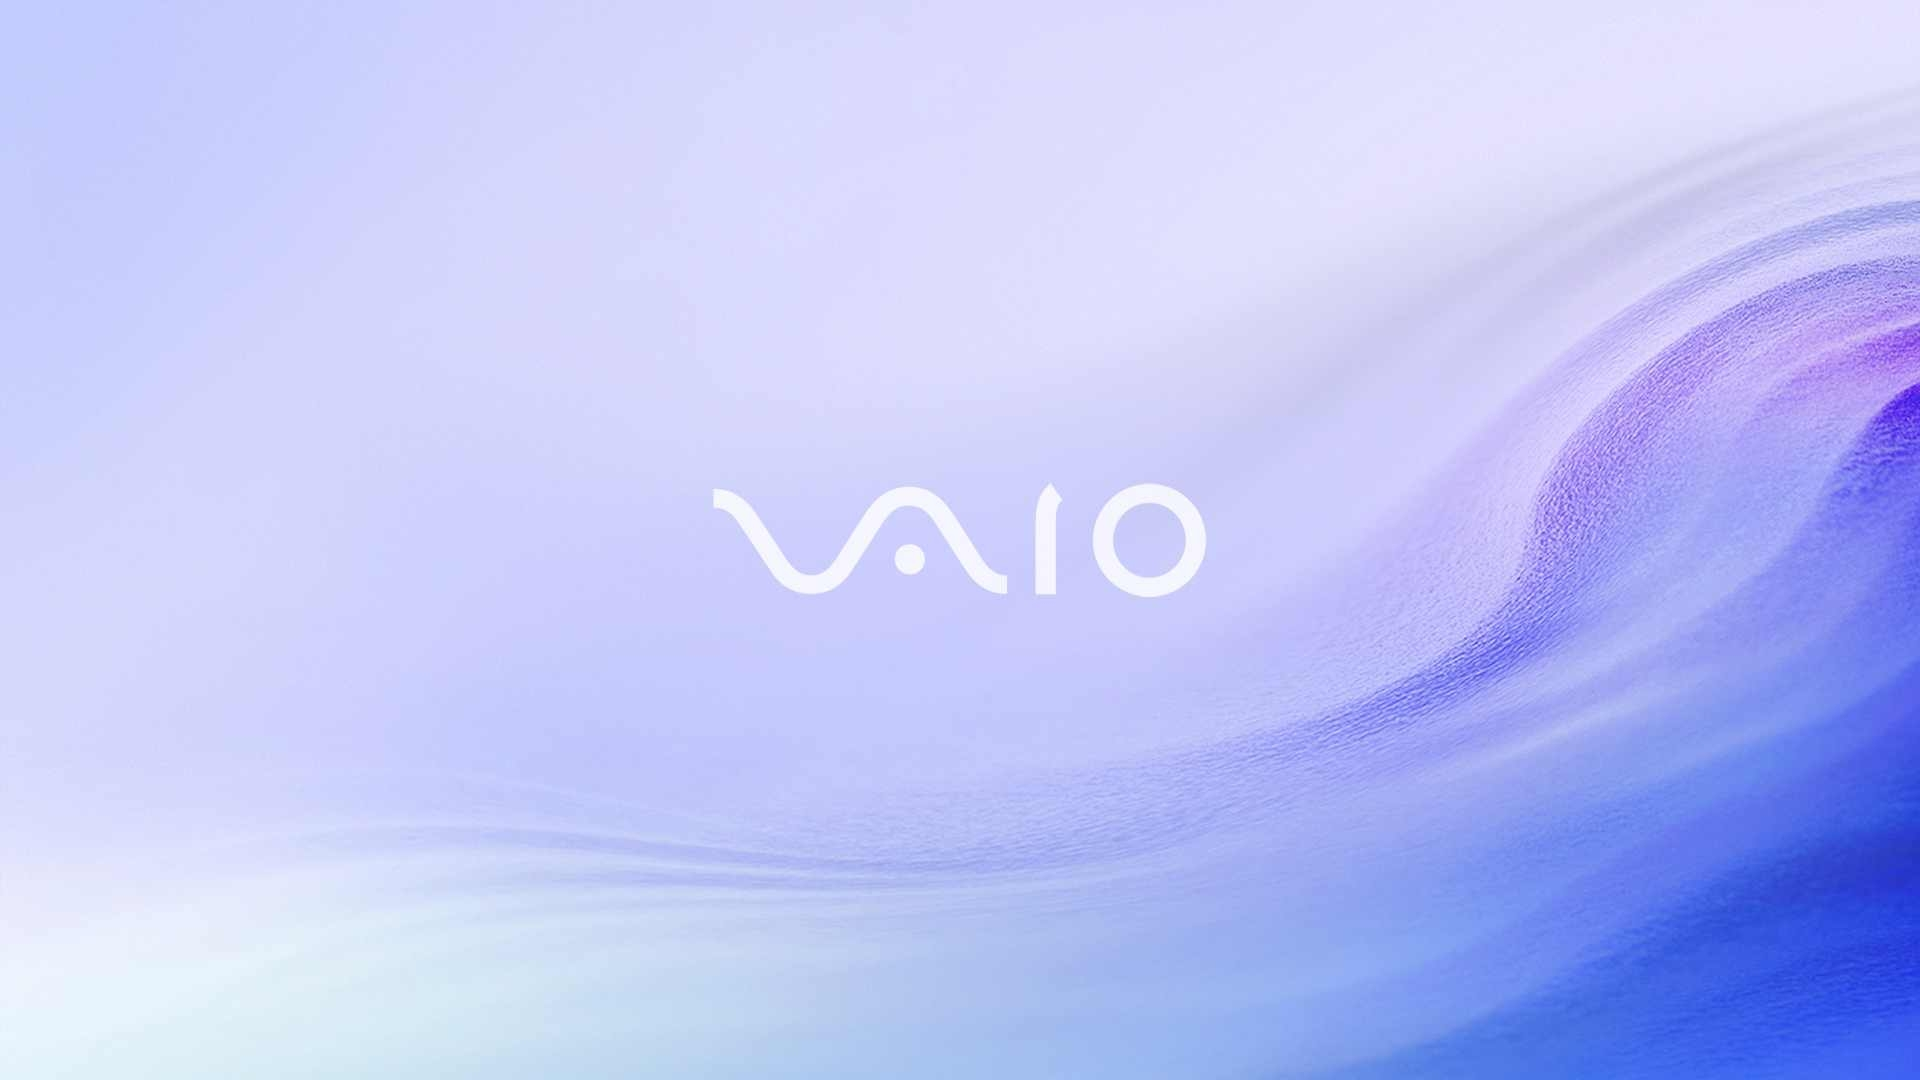 fantastic vaio wallpaper 41195